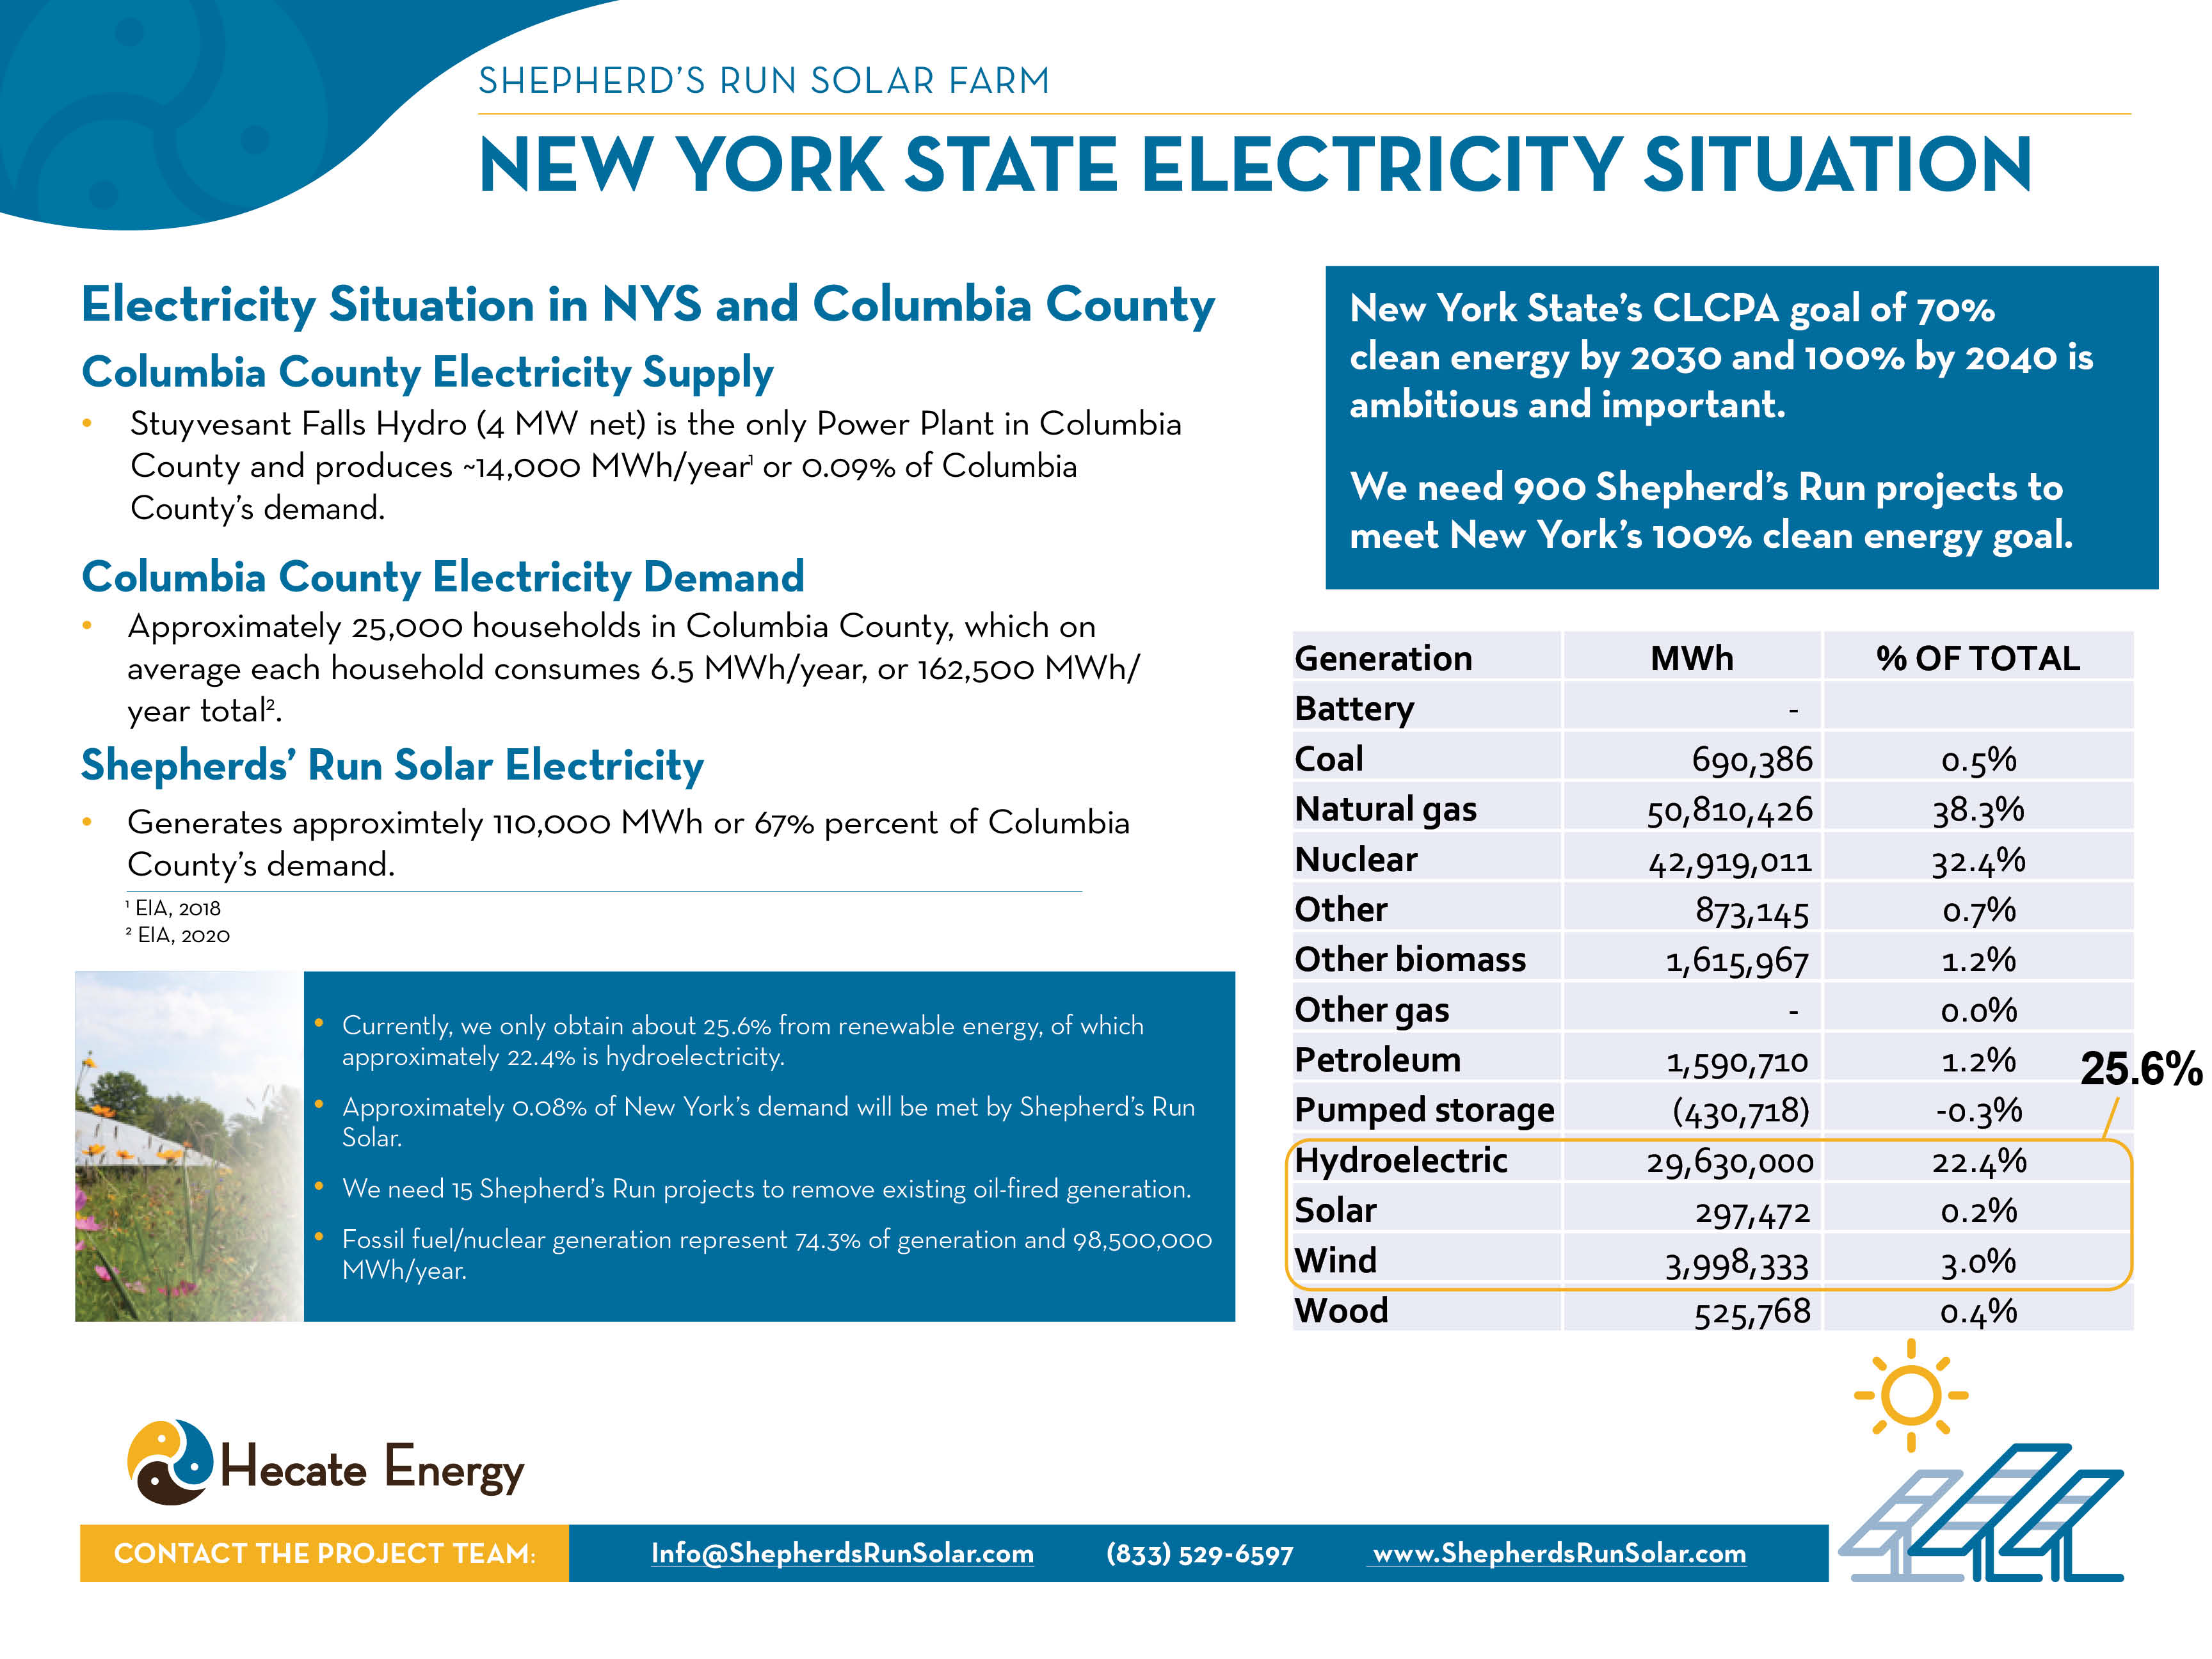 NYS Electricity Situation